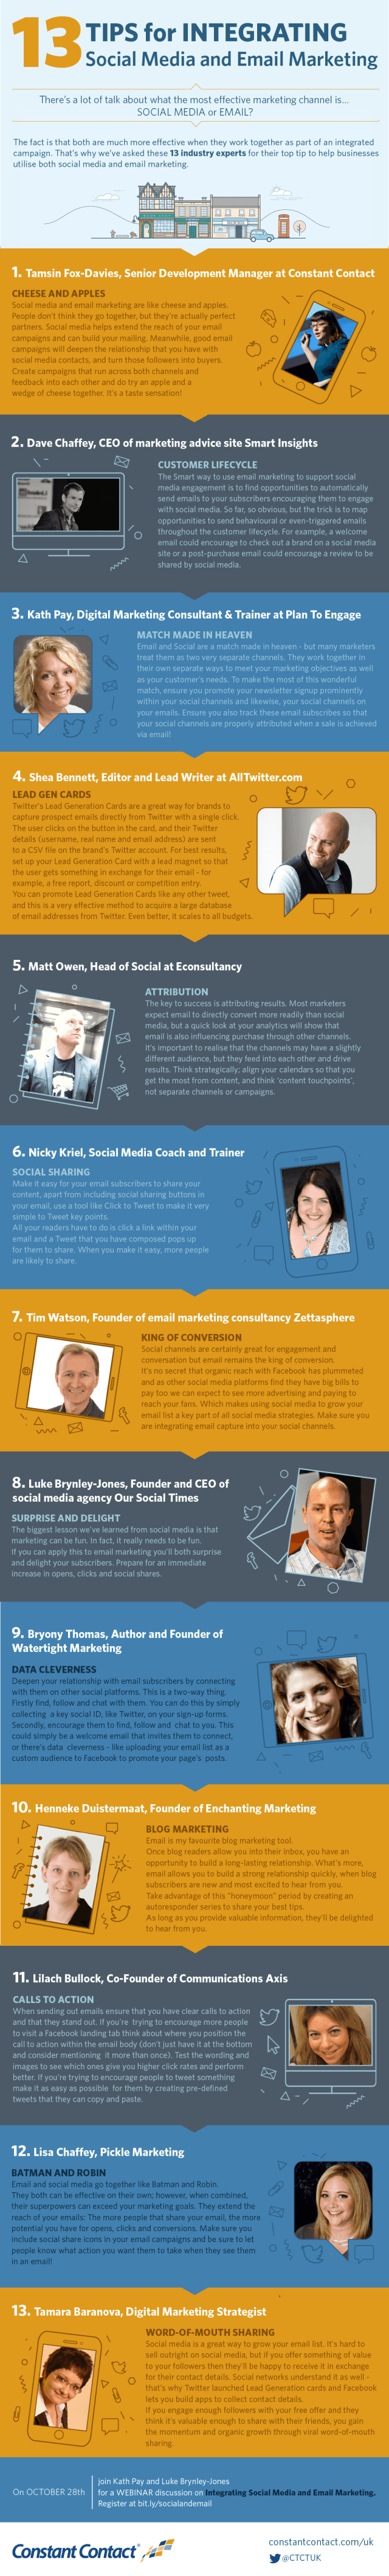 13-Tips-for-Integrating-Social-Media-and-Email-Marketing